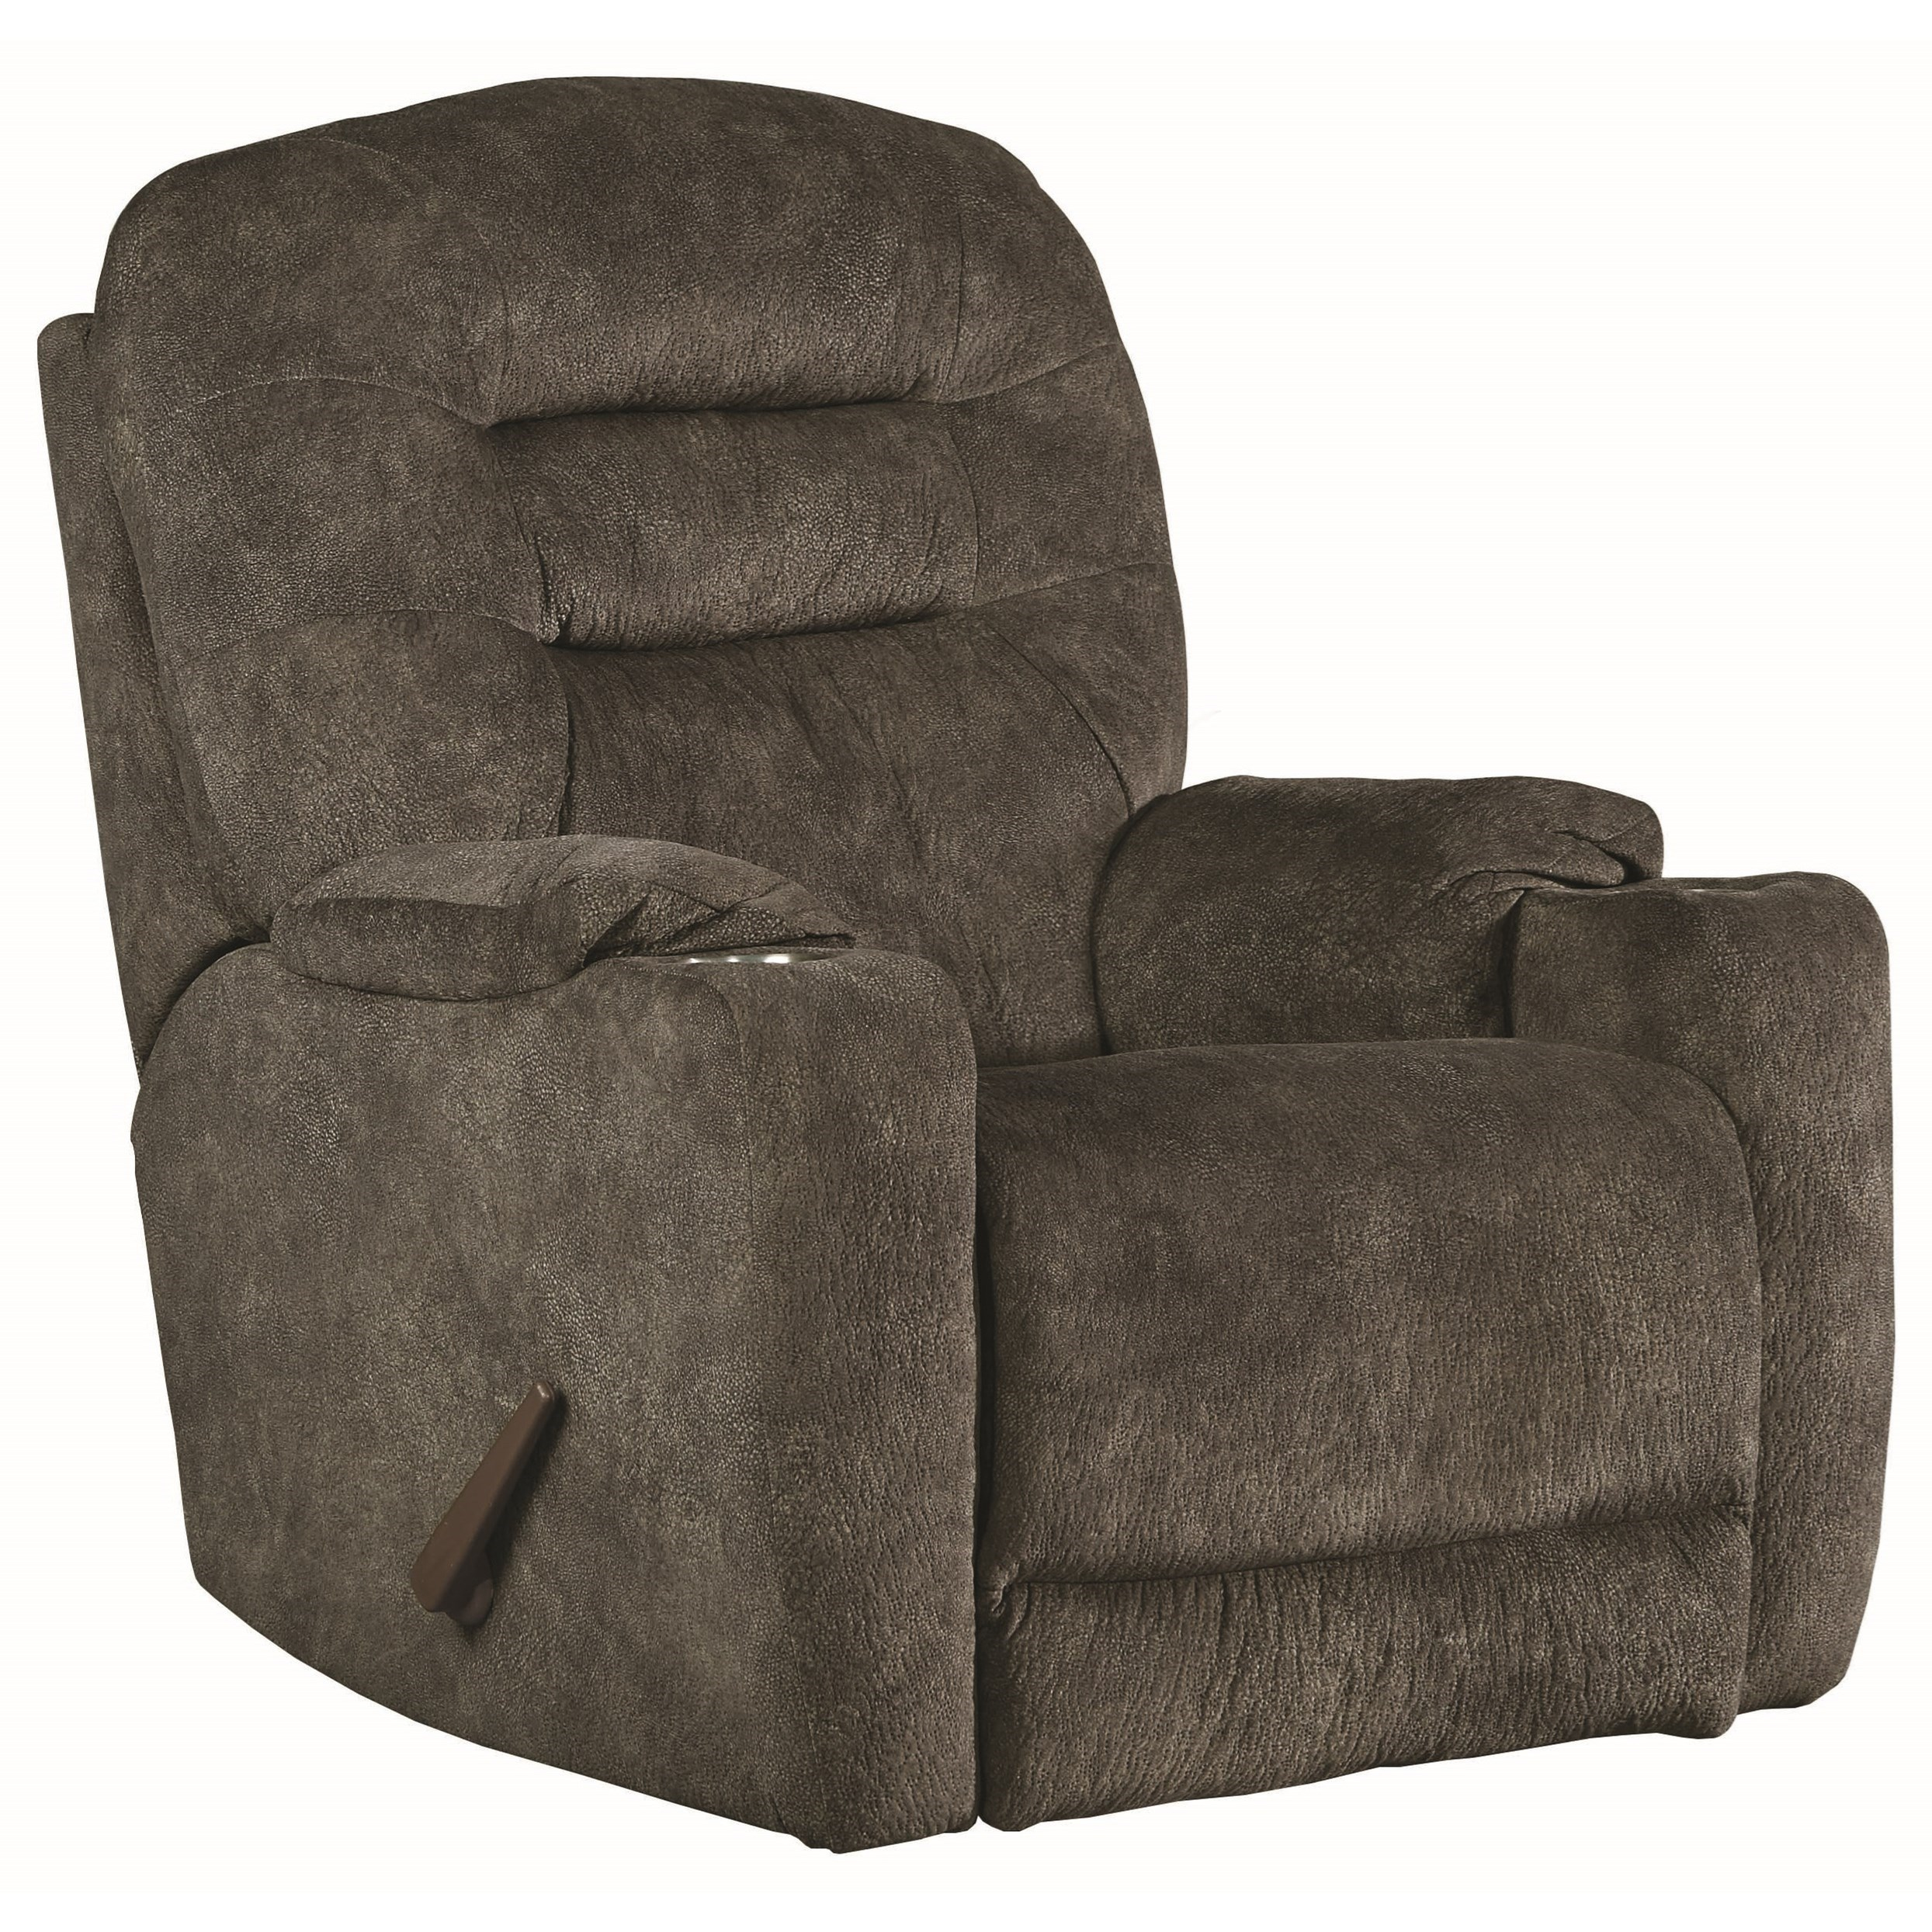 Front Row Swivel Rocker by Southern Motion at Lapeer Furniture & Mattress Center